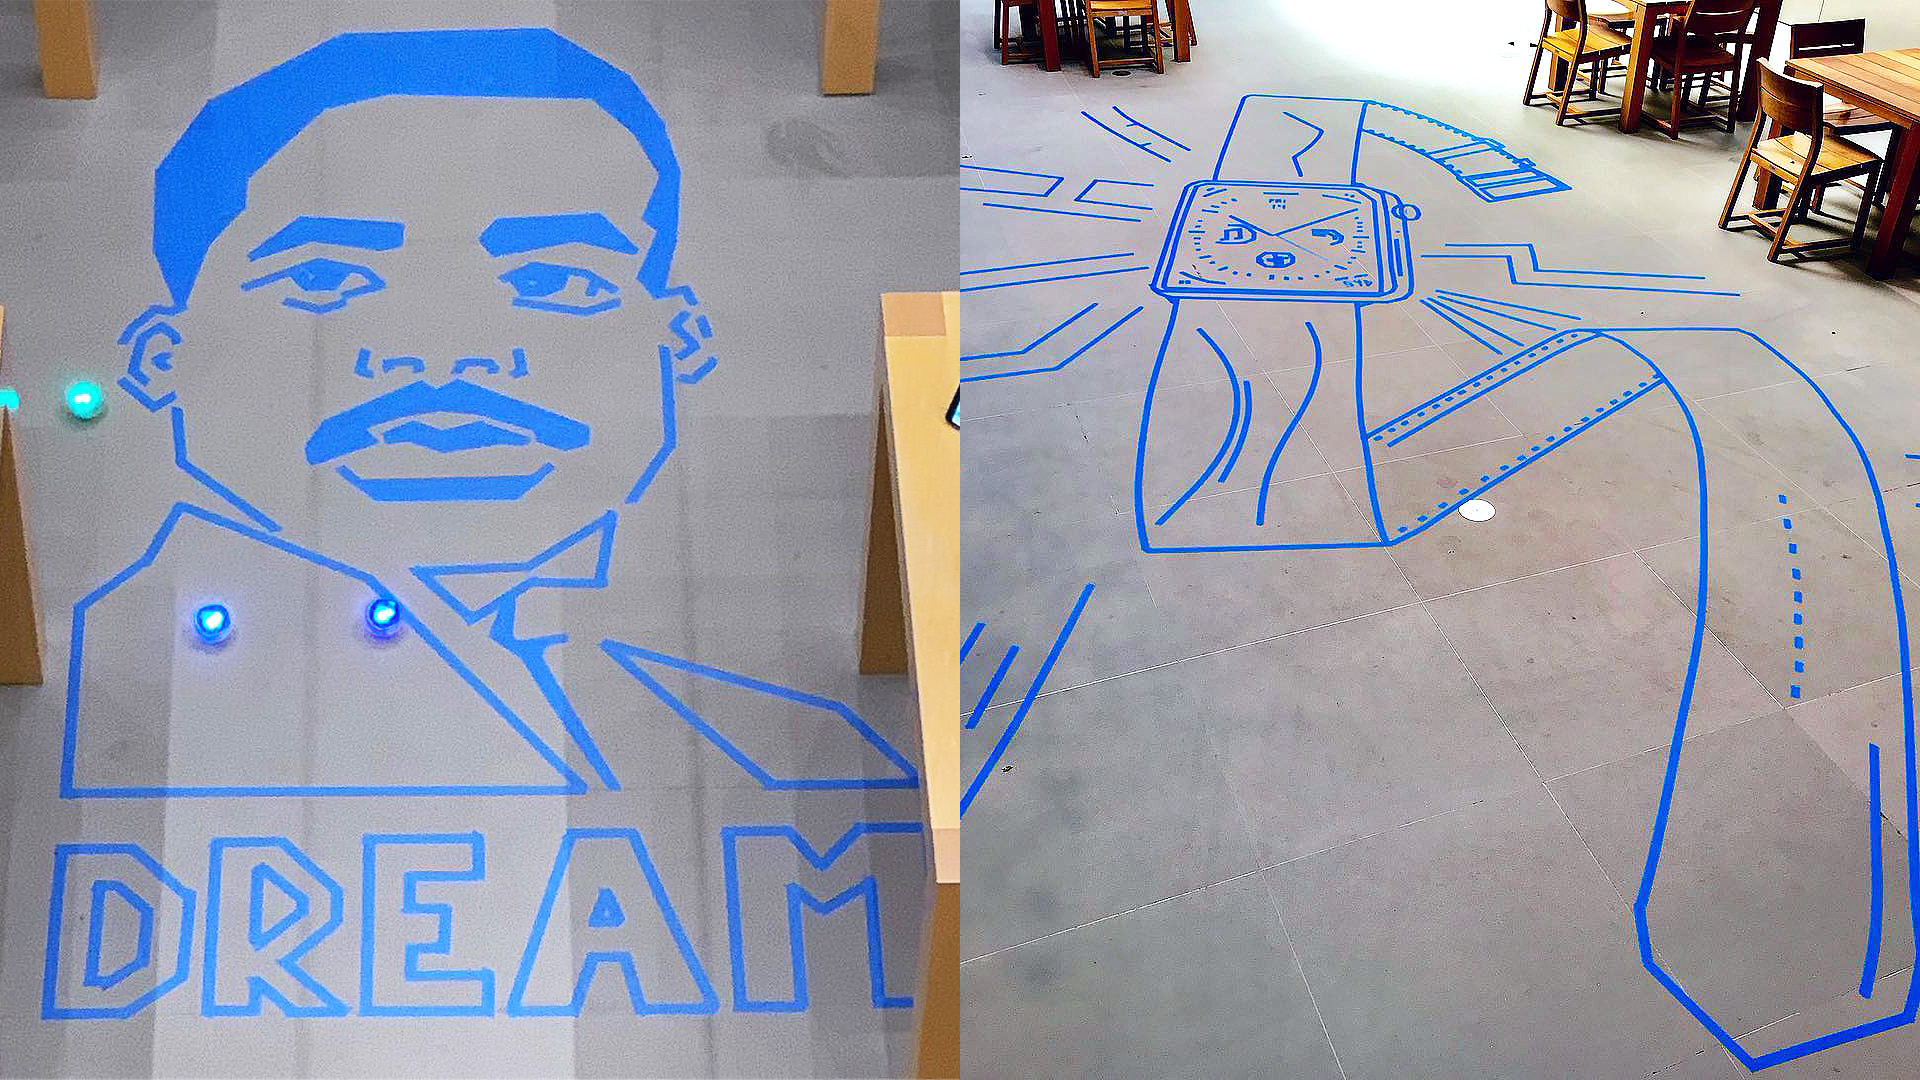 Sphero Maze Art Adds A Creative Twist To A Favorite Apple Store